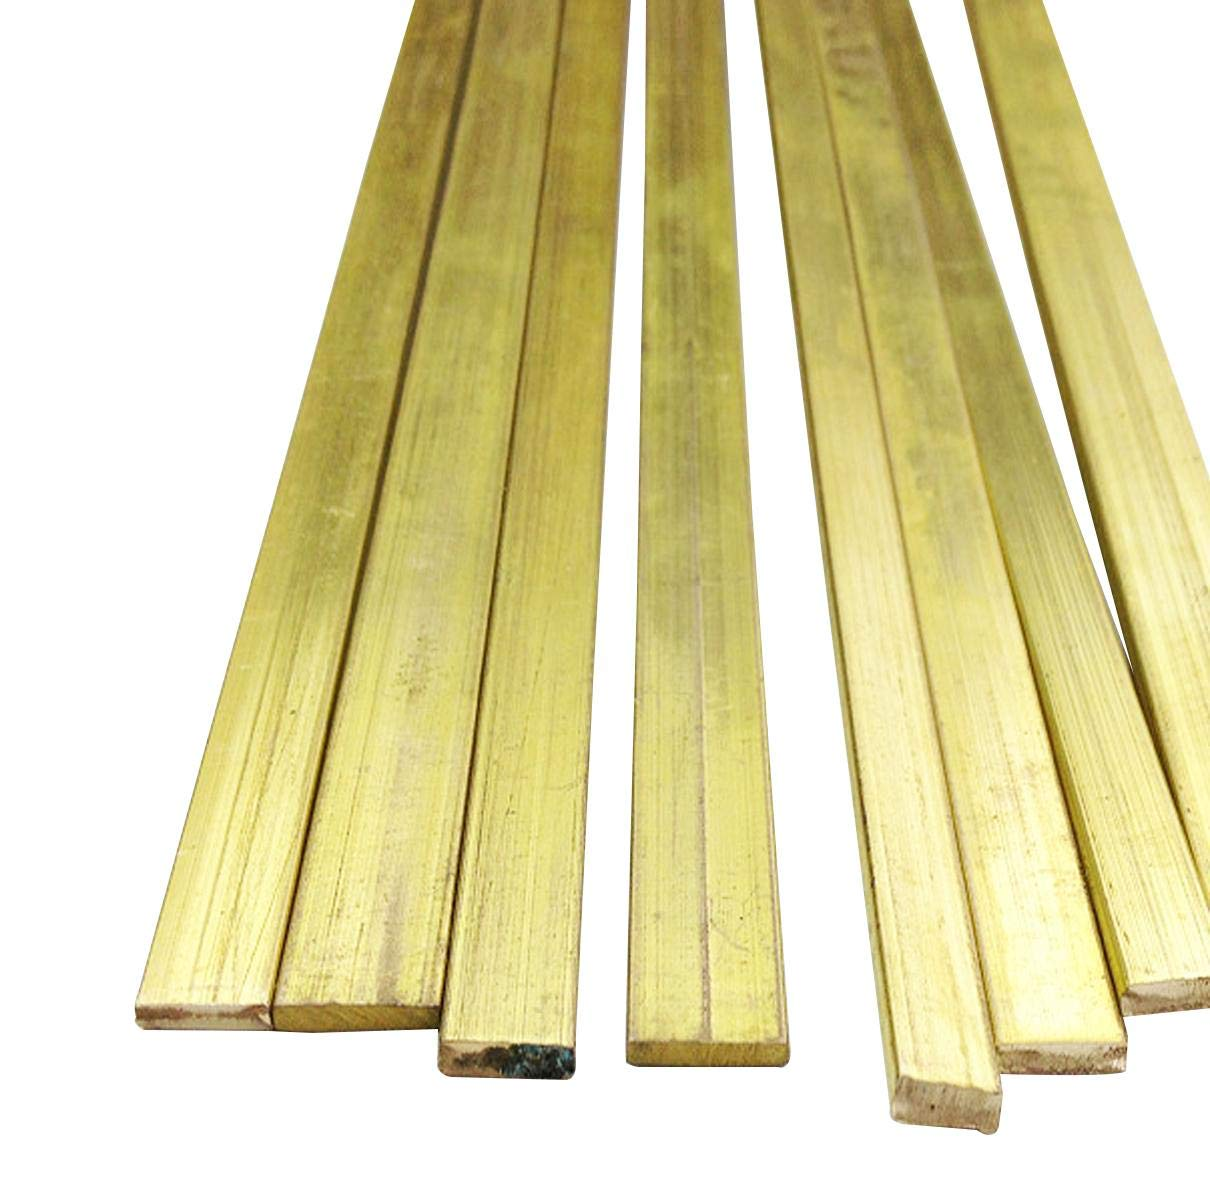 US Stock C360 Brass Flat Bar Sheet 6mm x 15mm x 250mm